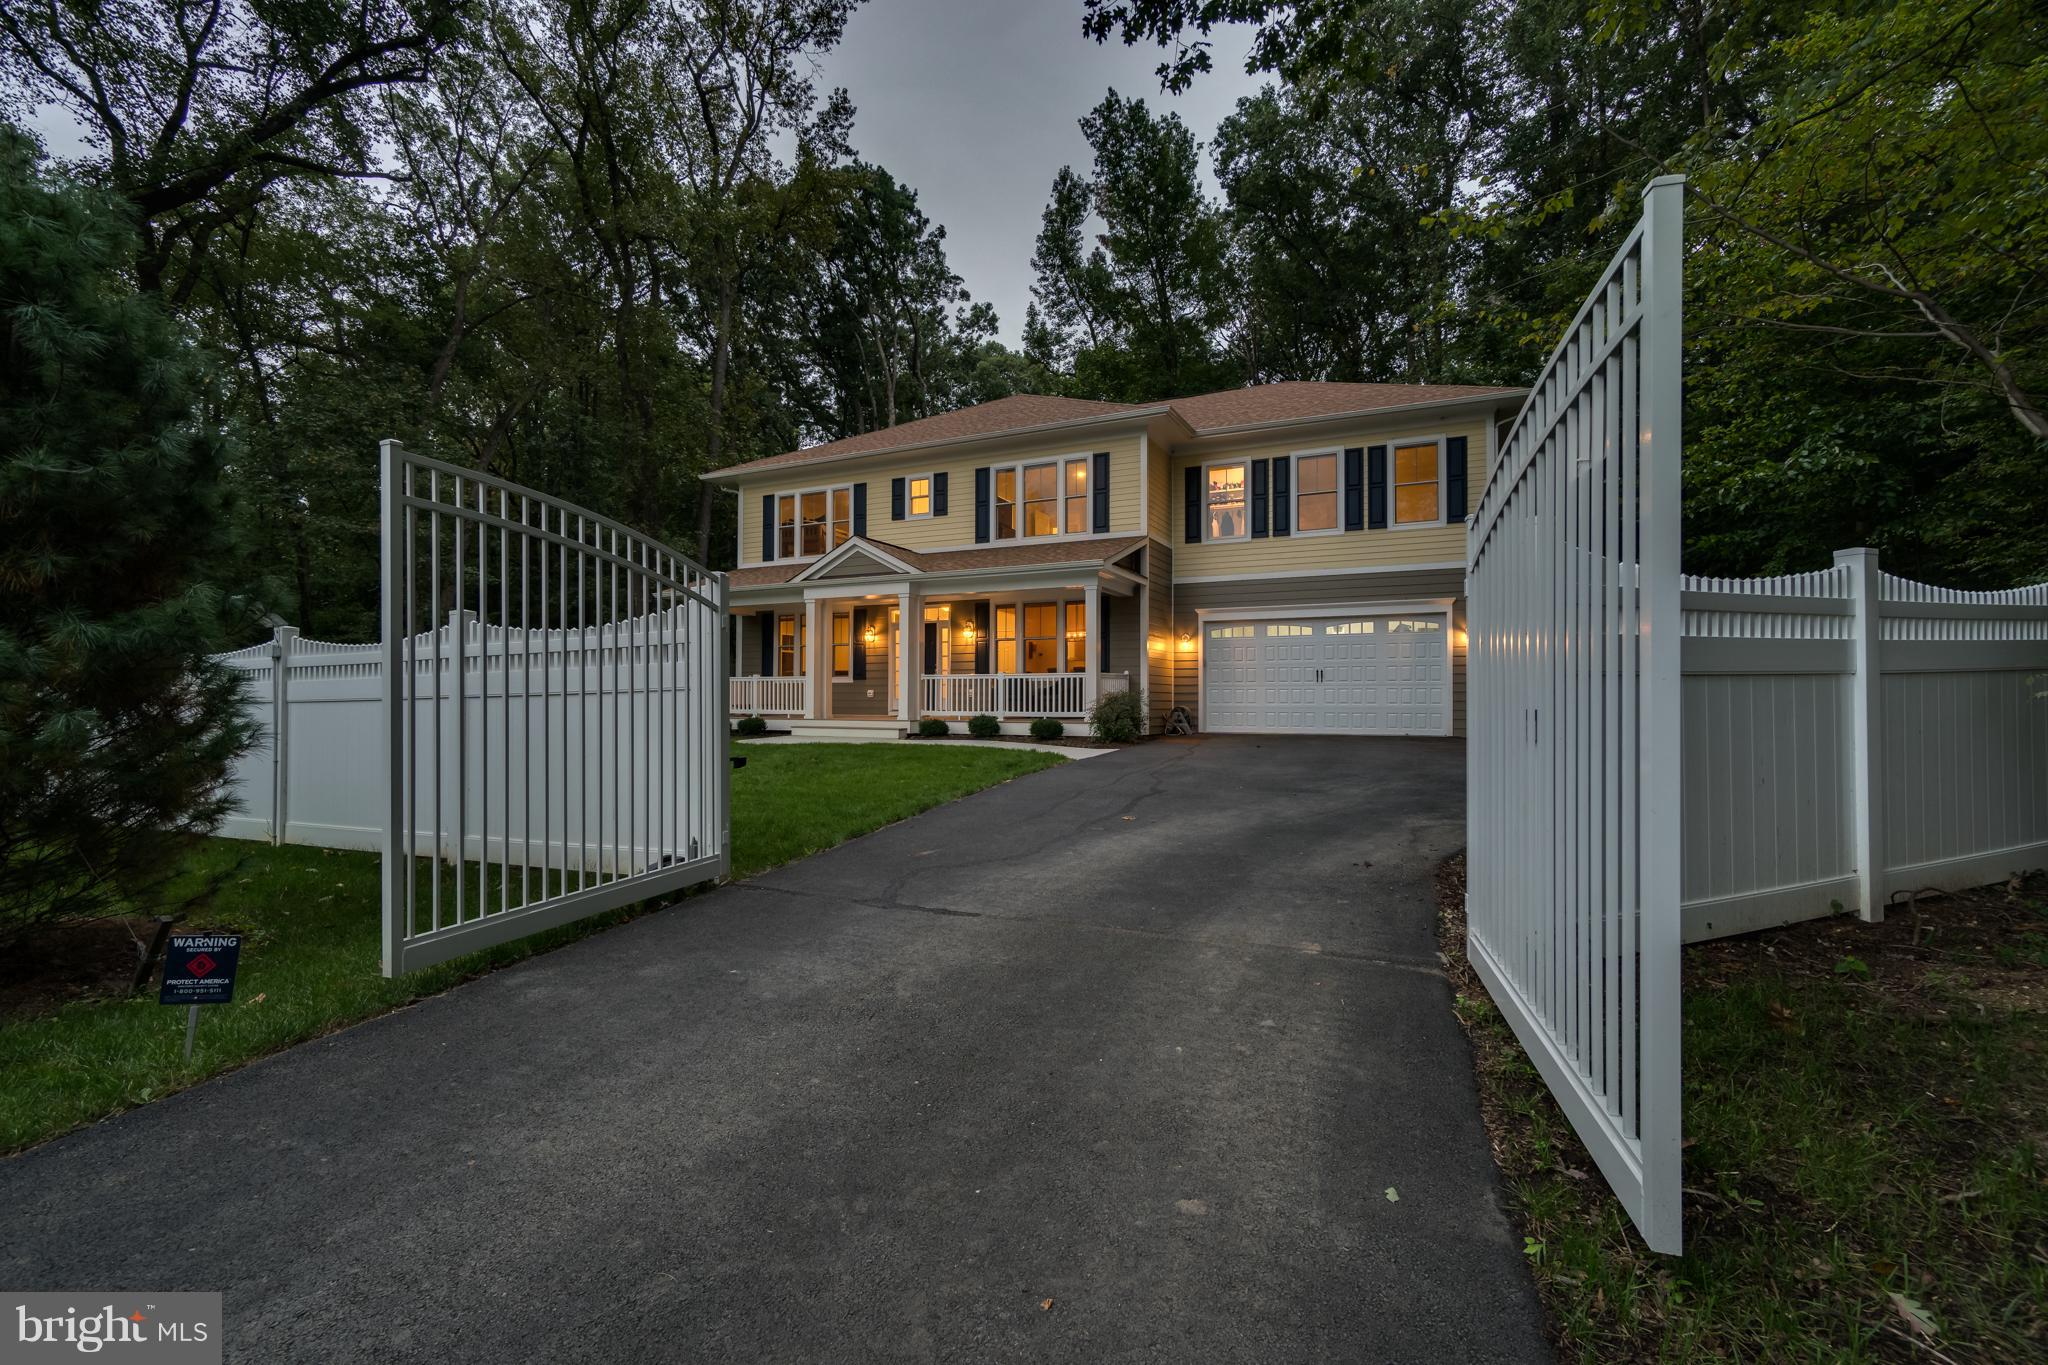 Rare opportunity to purchase the home of WNBA Mystics Superstar Elena Delle Donne! Elena thought of everything! Soaring 9 ft ceilings, Gourmet KIT, LR with cozy FP & floor to ceiling built-ins, stunning MBR has huge walk-in closet & 4 pc BA with rain shower, BONUS upper lvl Rec RM, private office, 2 car gar, on private 1 fenced acre. 5 mi to Reagan Natl, 2 mi to Whole Foods, 3 mi to Trader Joes!